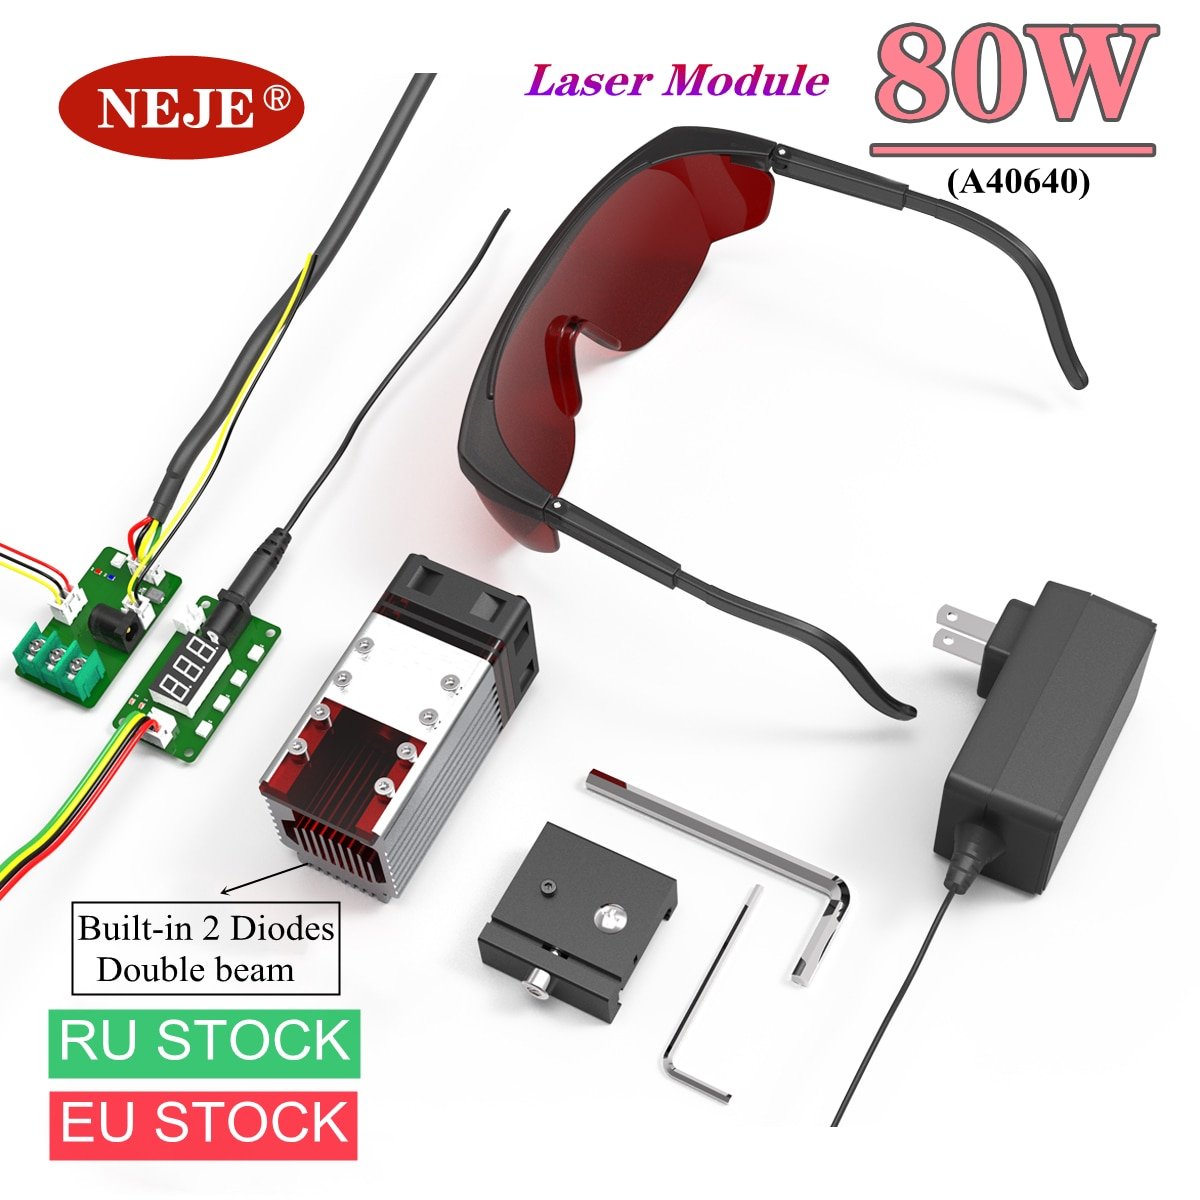 NEJE A40640 80W High Power Laser Module Kits Laser Head Built-in Two Diodes for CNC Laser Engraving Machine Wood Cutting Tool